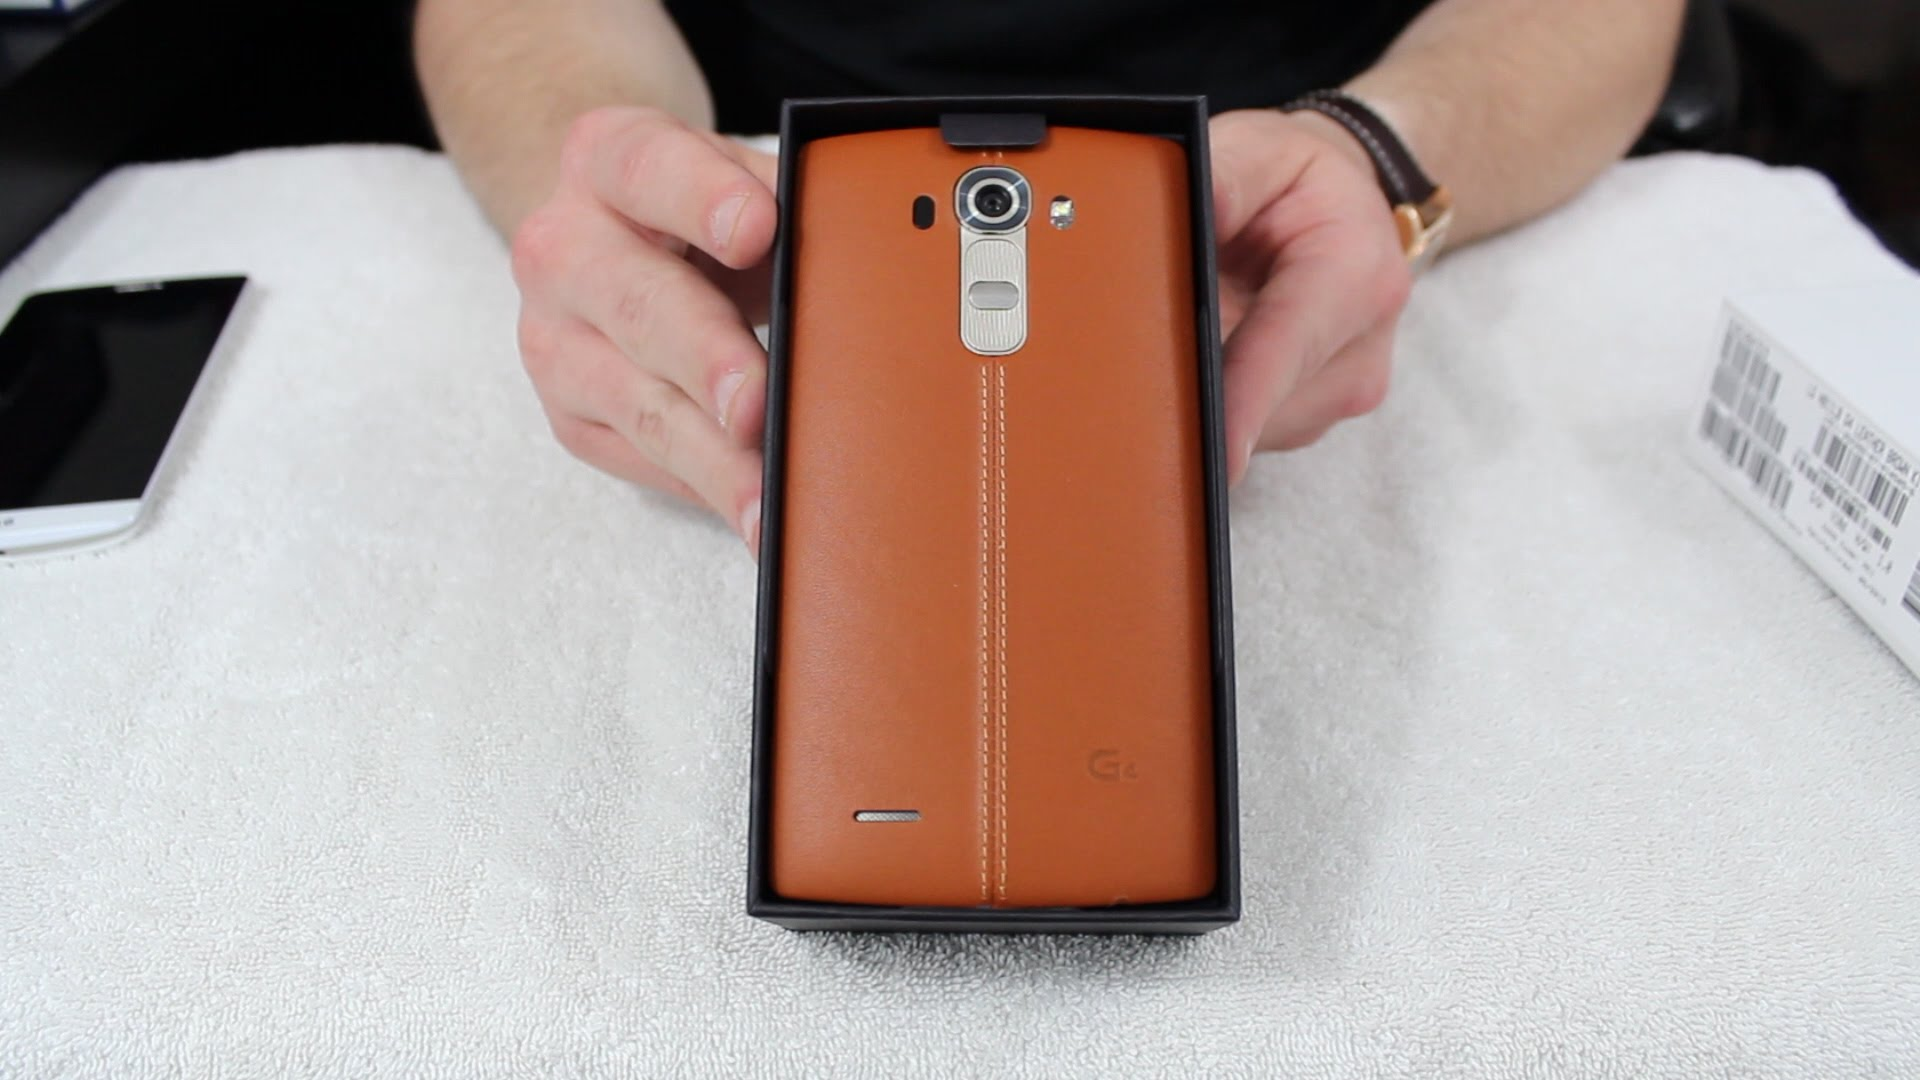 T-Mobile LG G4 Getting Mandatory Software Update | Android